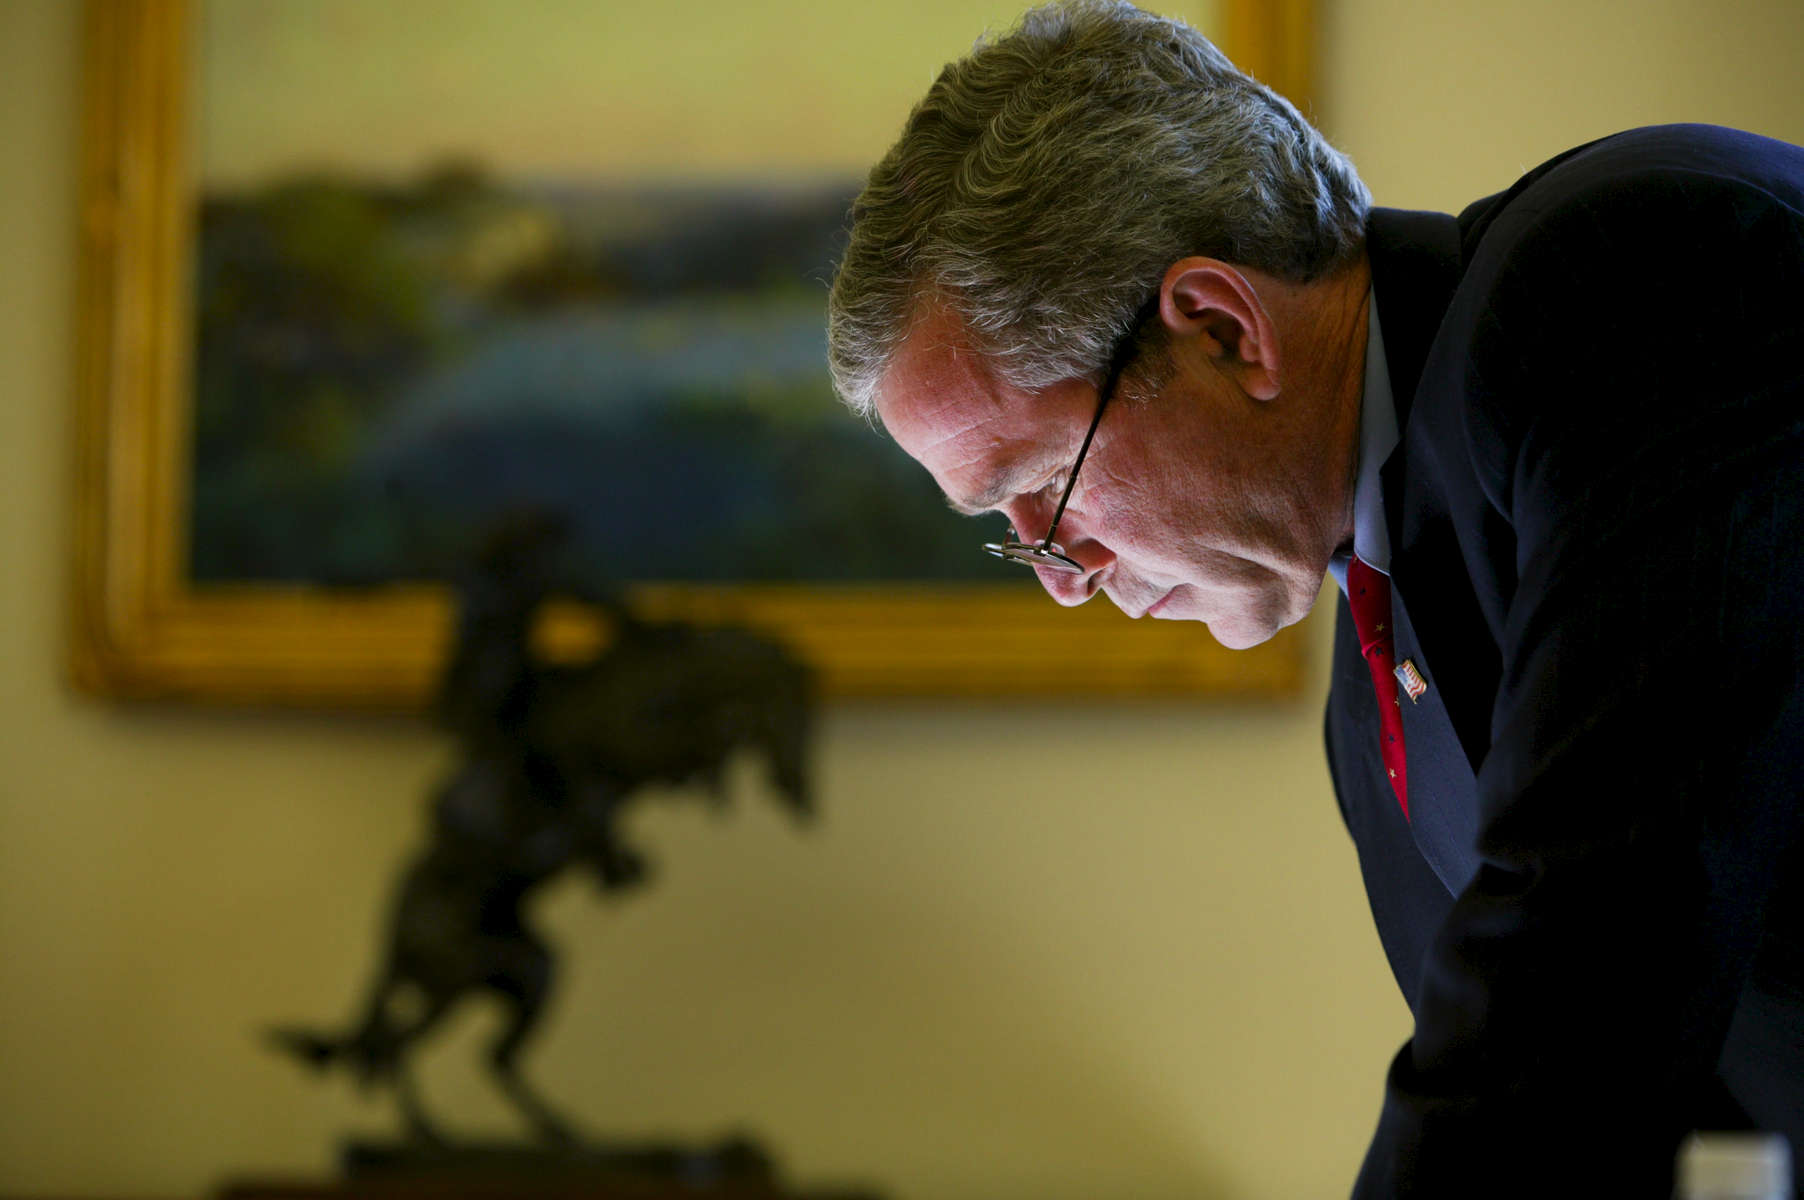 President Bush in the Oval Office following the meeting with President Mikhail Saakashvili of Georgia. Tight shot of President Bush writing at his desk. {quote}The Bronco Buster{quote} sculpture by Frederic Remington is pictured. Bush Family Scrapbook February 17 - March 9, 2004